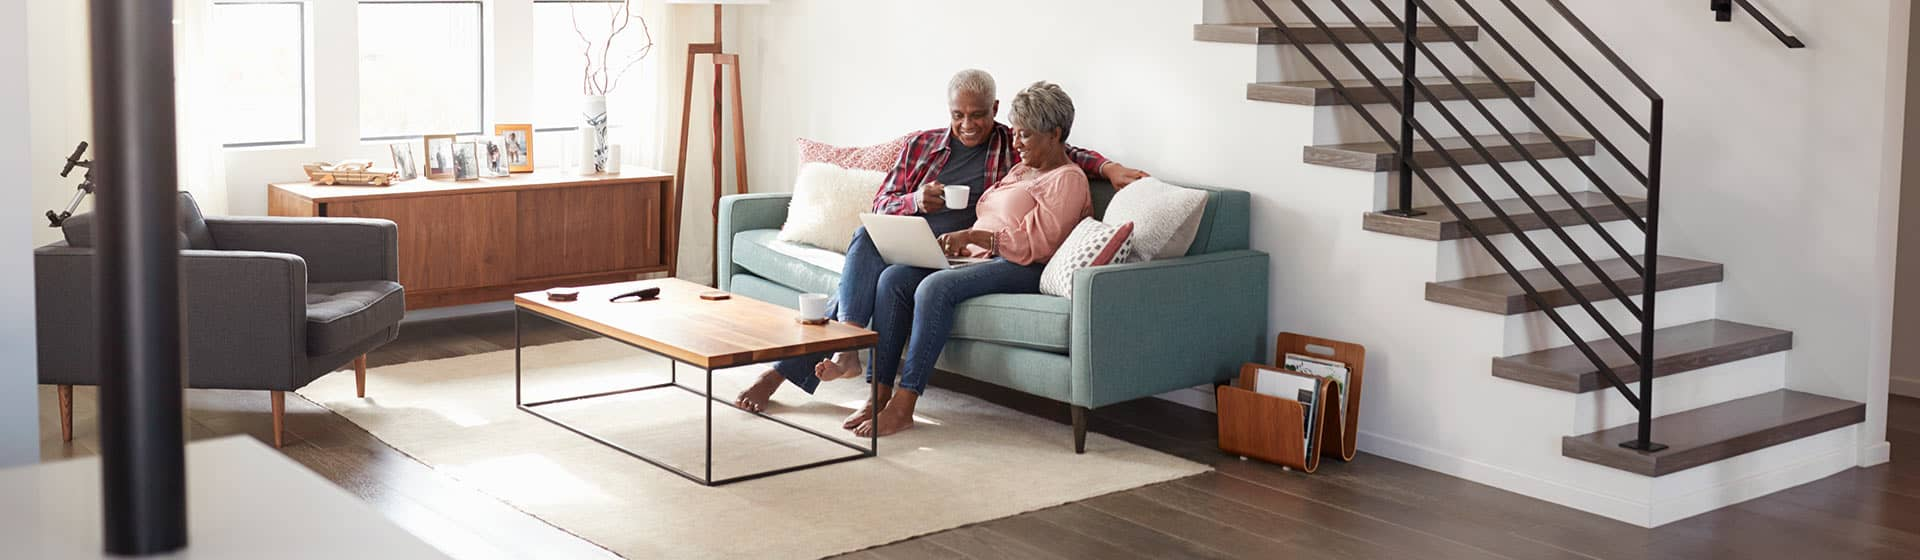 Elderly Couple on the couch using their laptop to check retirement savings numbers